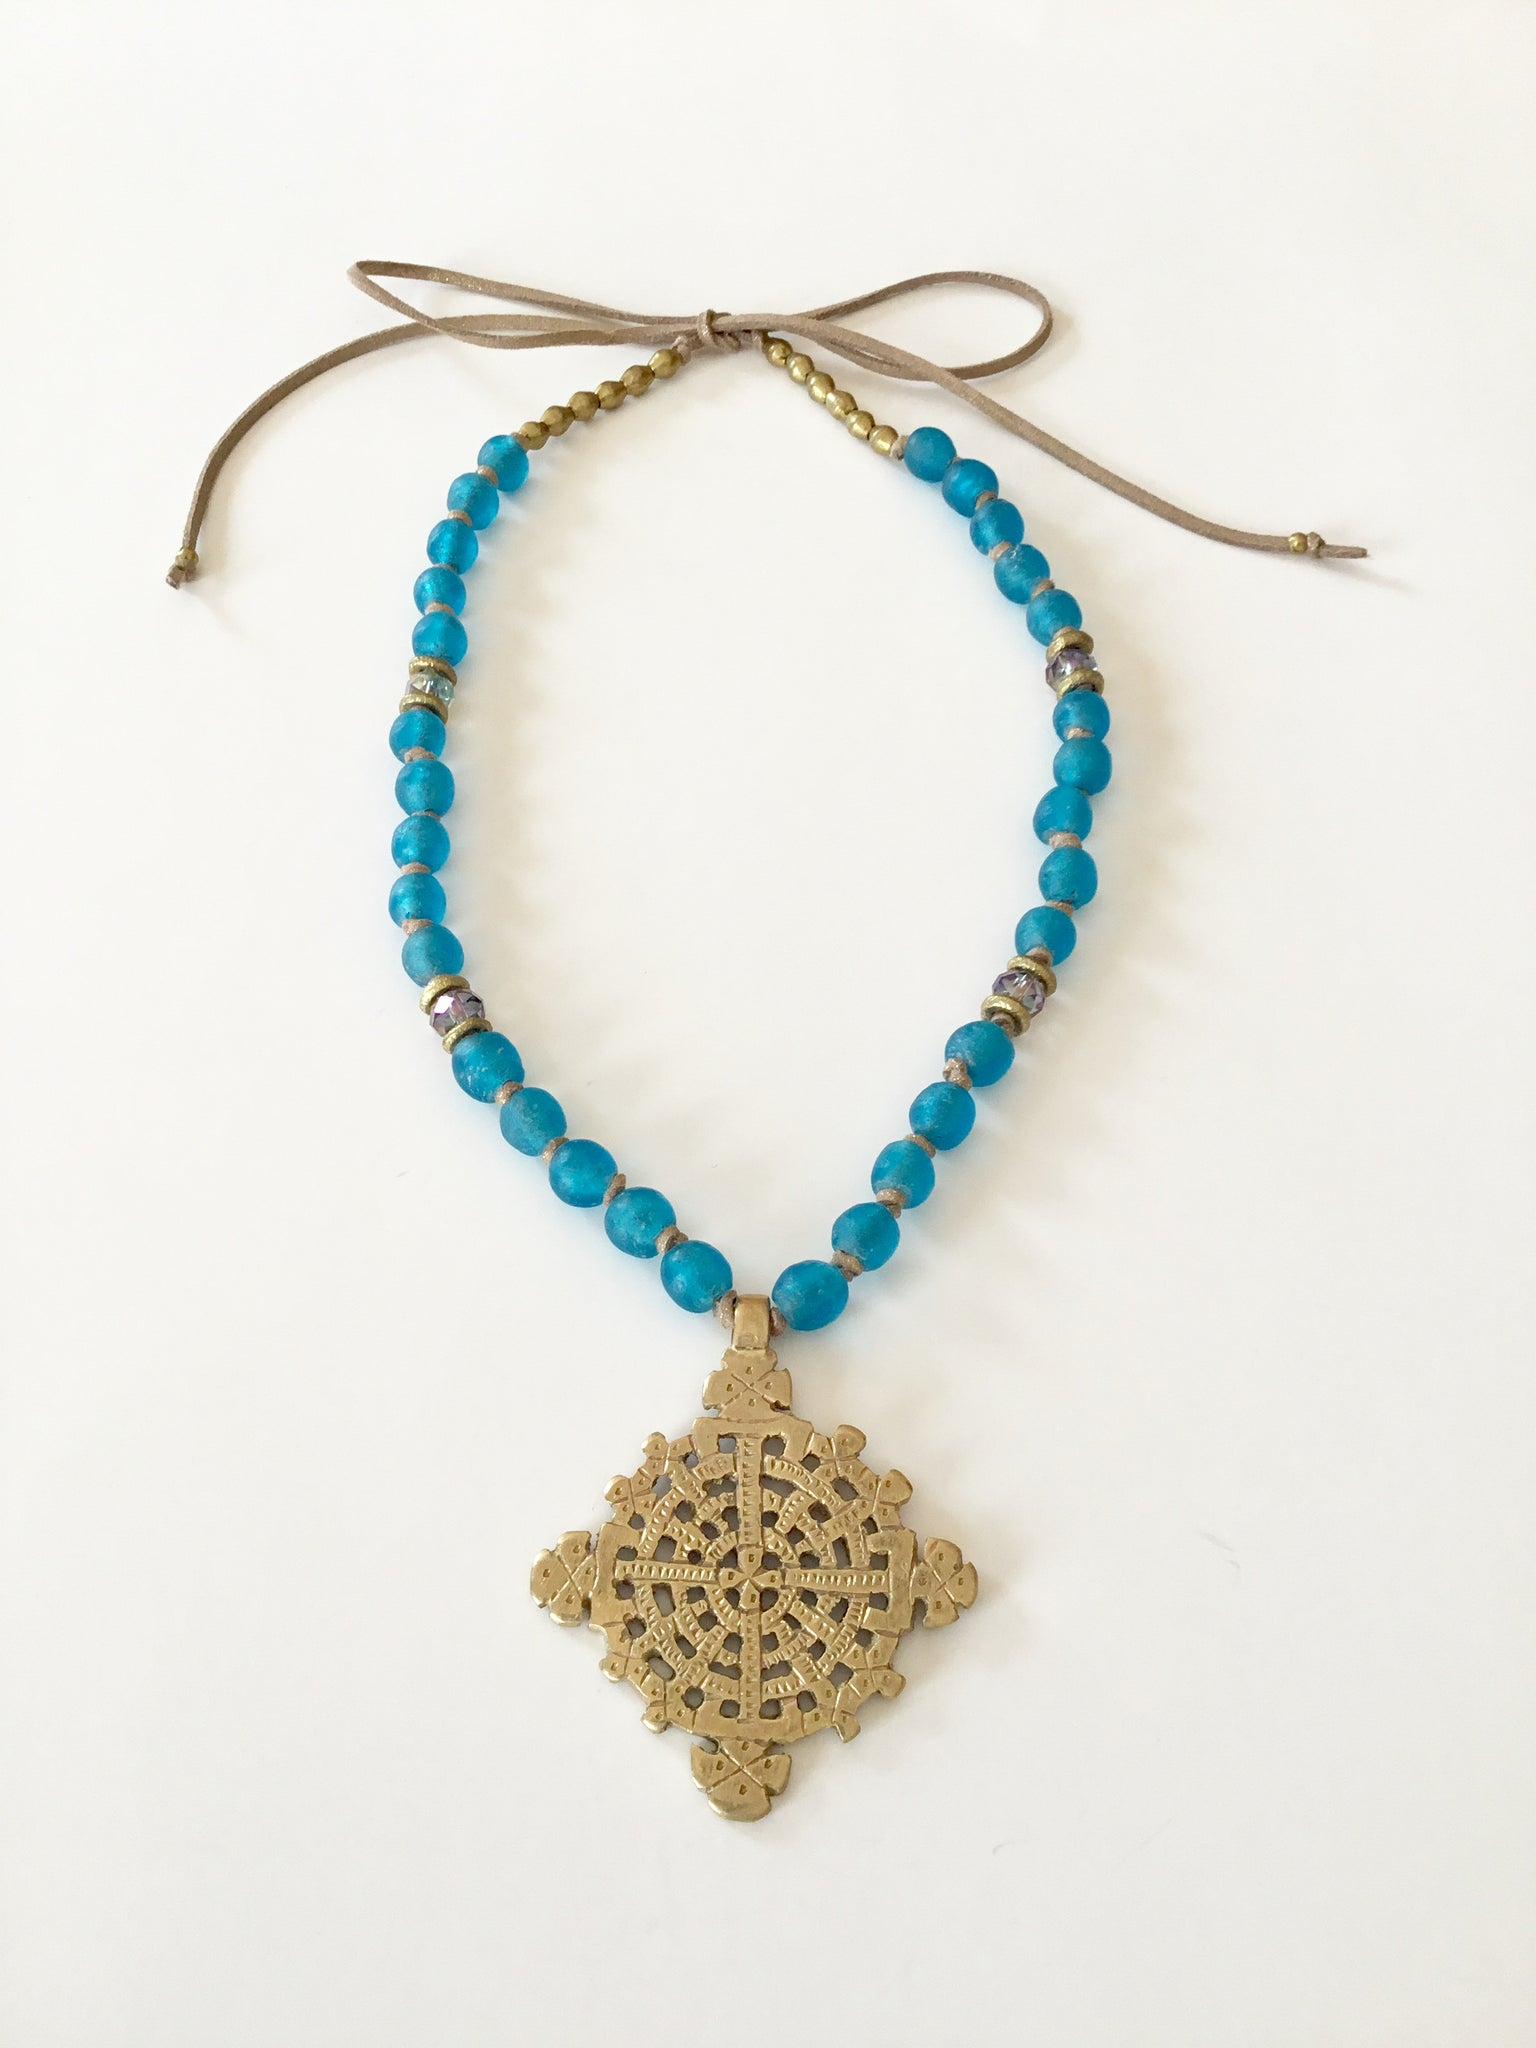 Ethopian Necklace N-0286, designed by Leyu Ambare Handmade Jewelry.